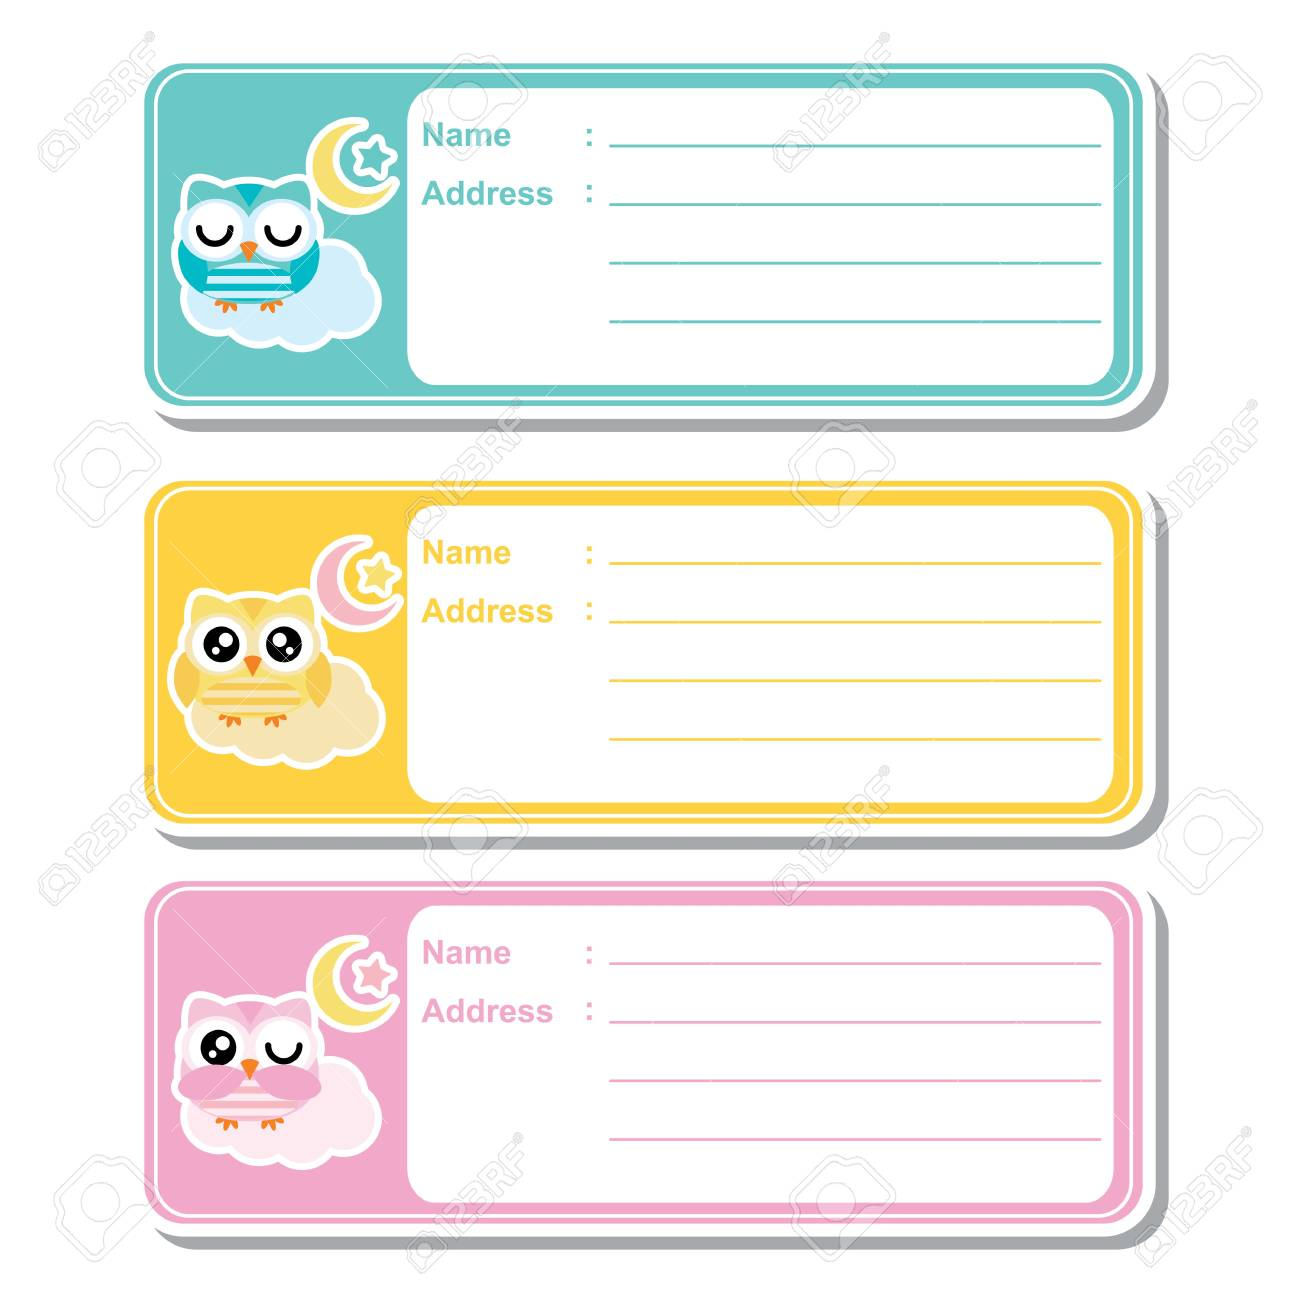 address label vector cartoon with cute owls on colorful background